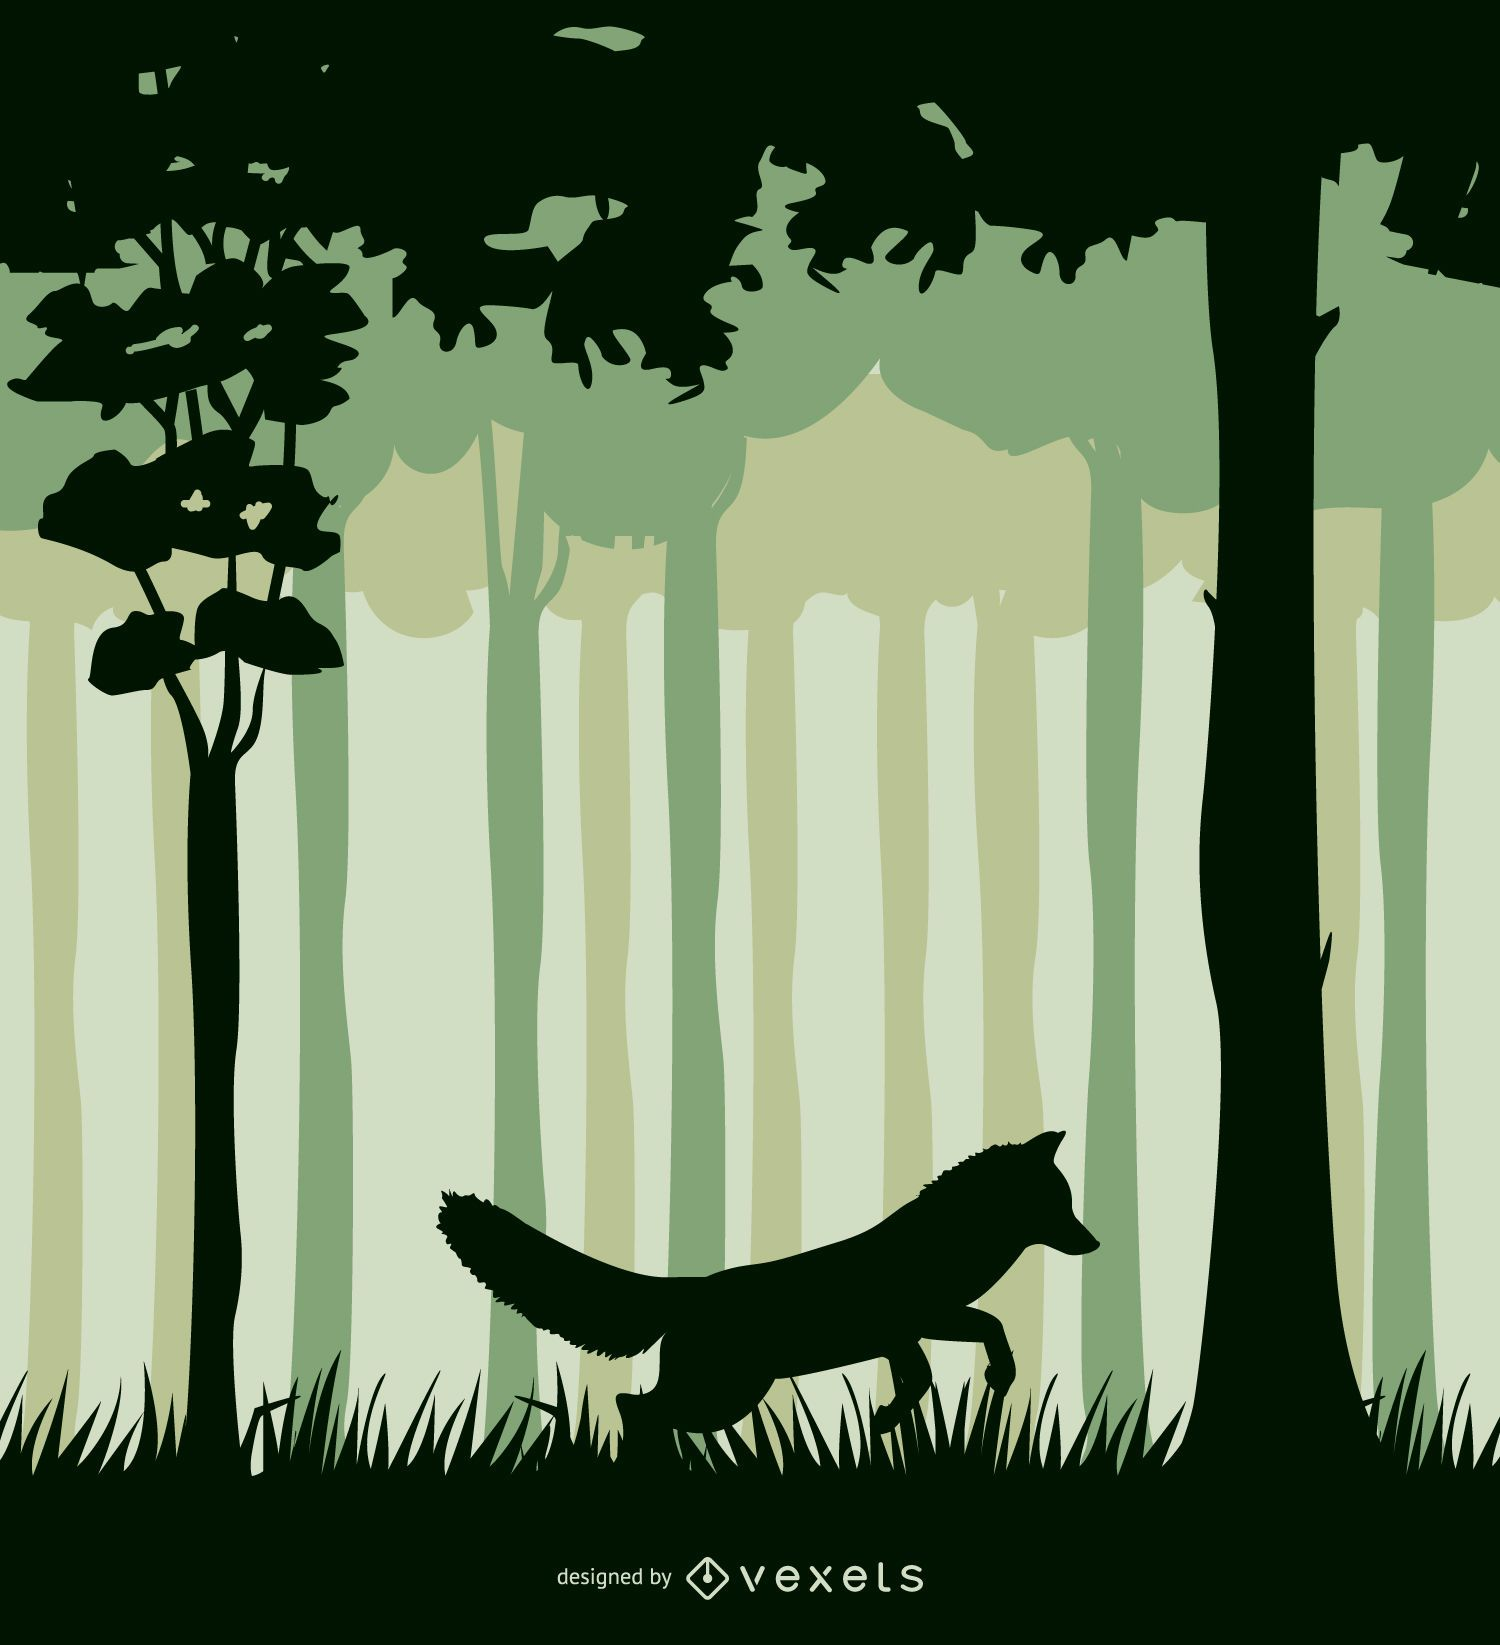 Fox in a forest landscape